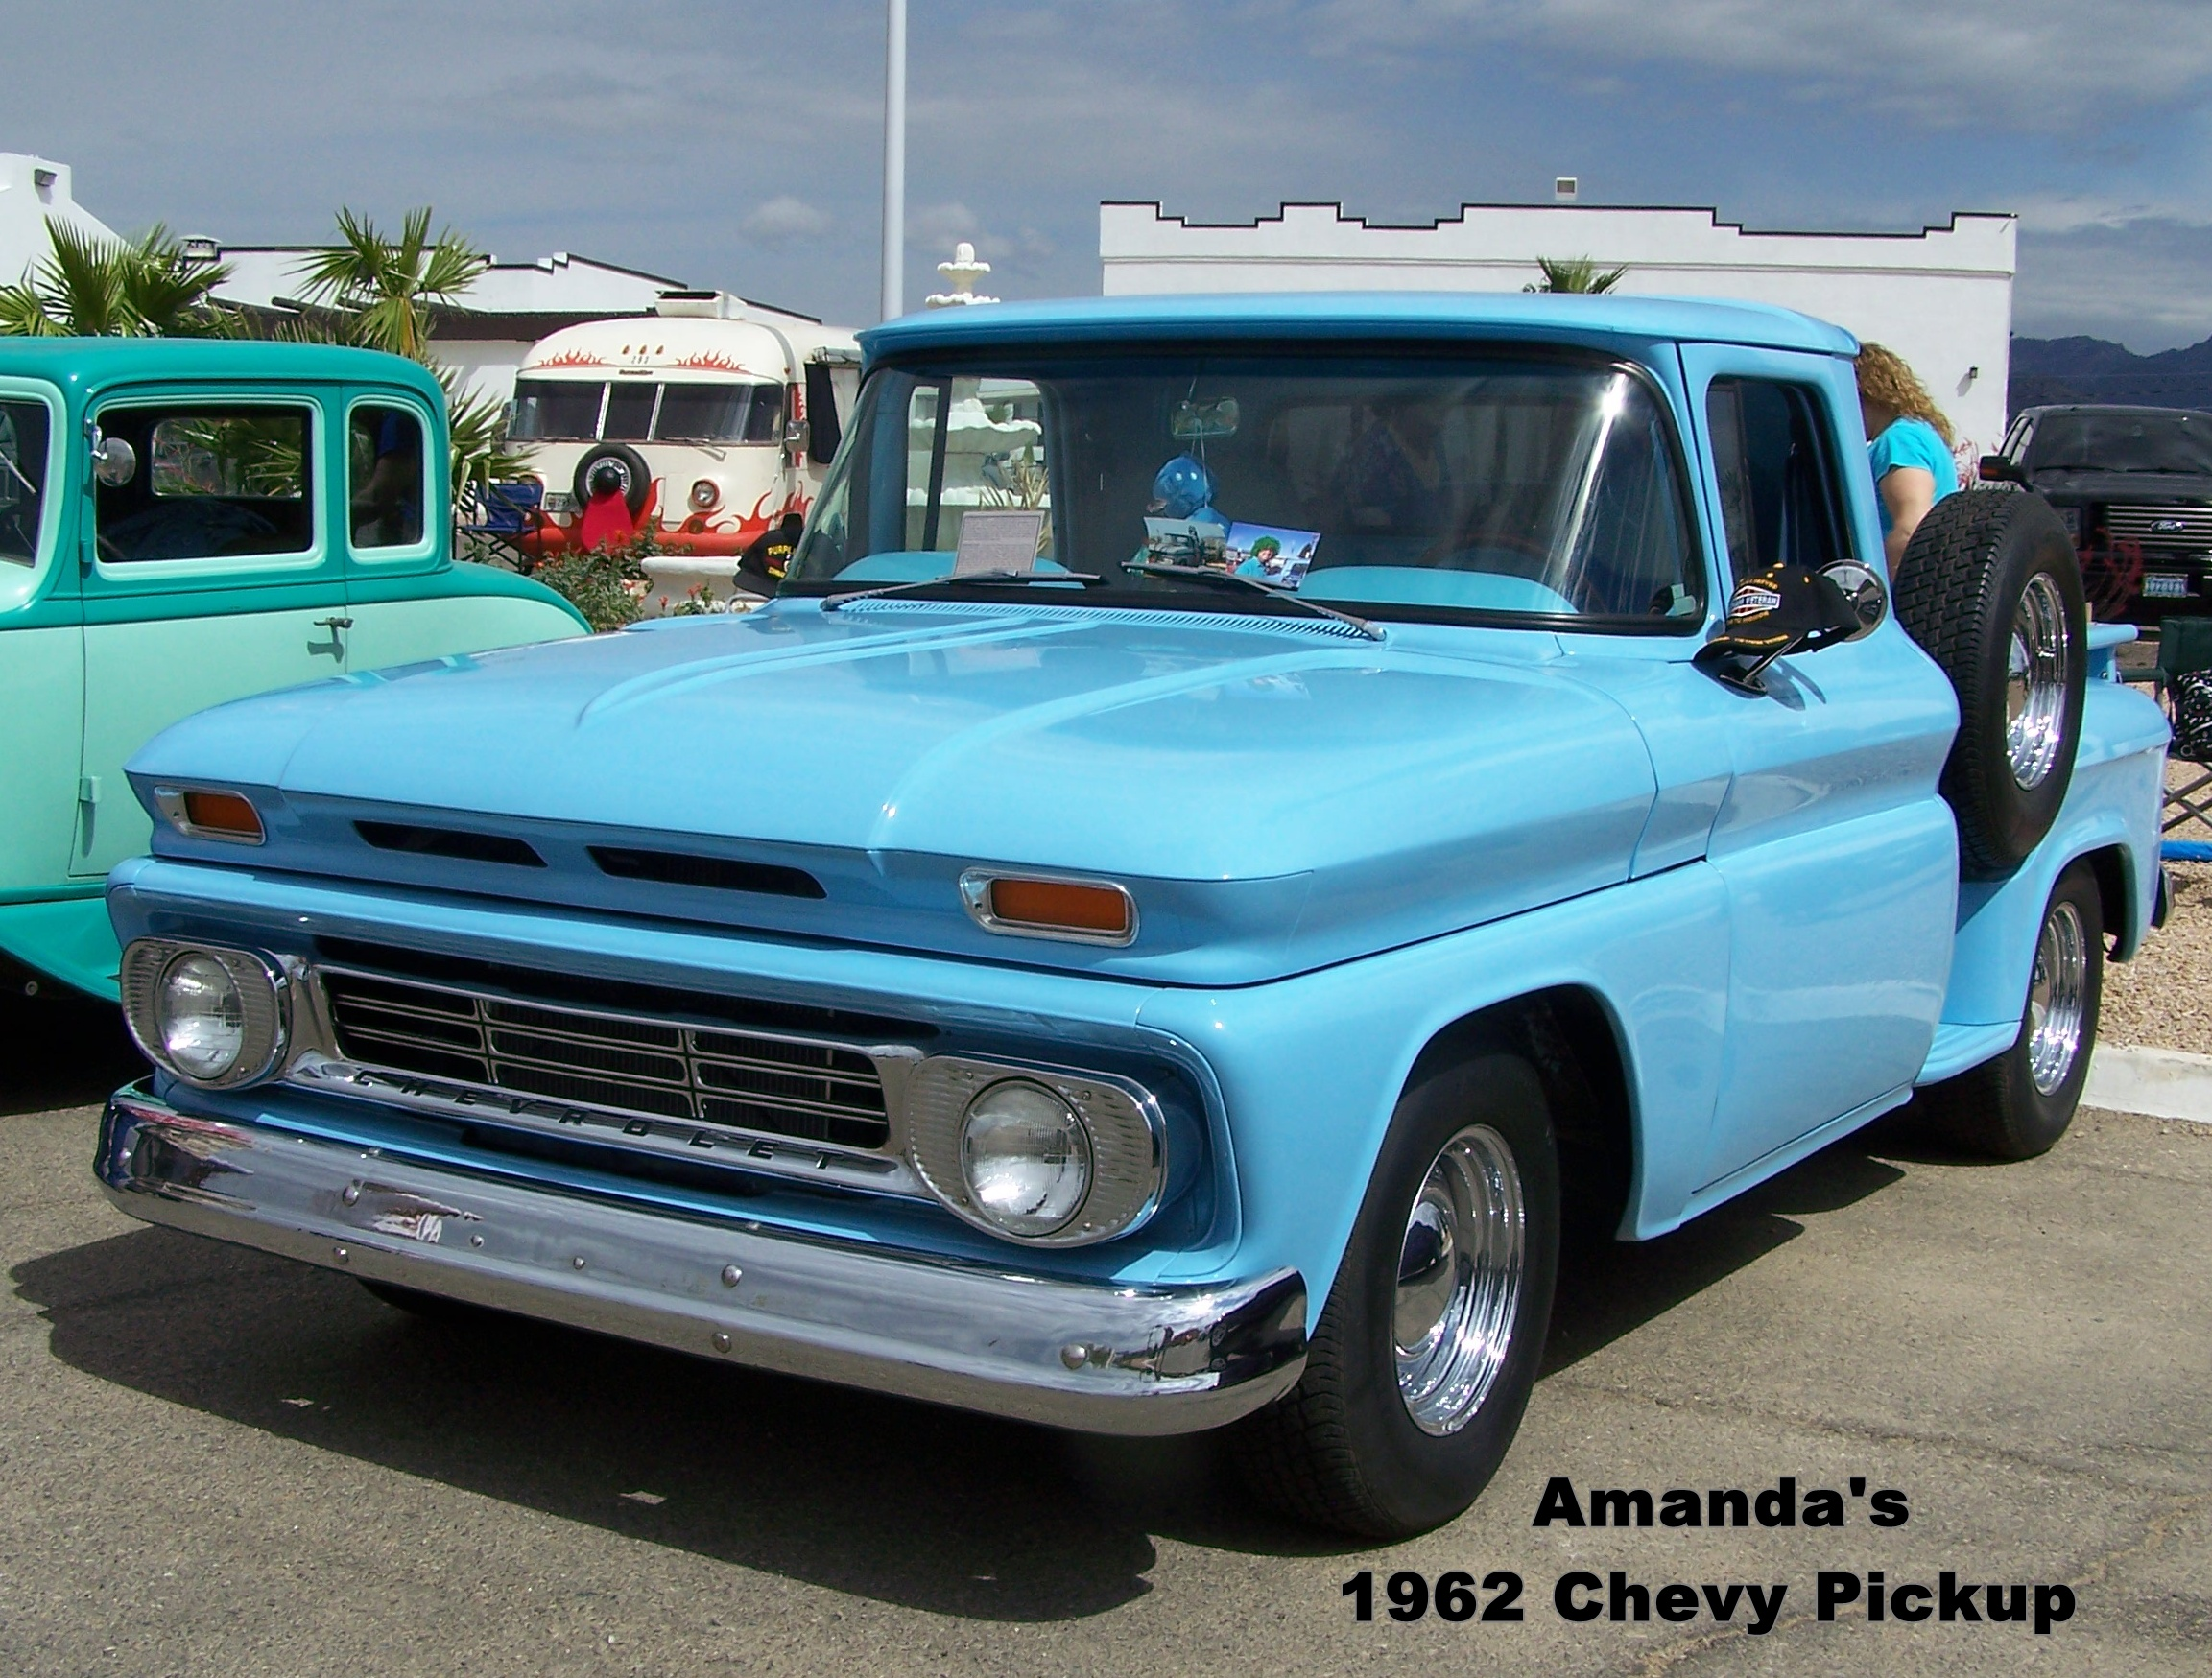 1962chevypickupamandalong.jpg